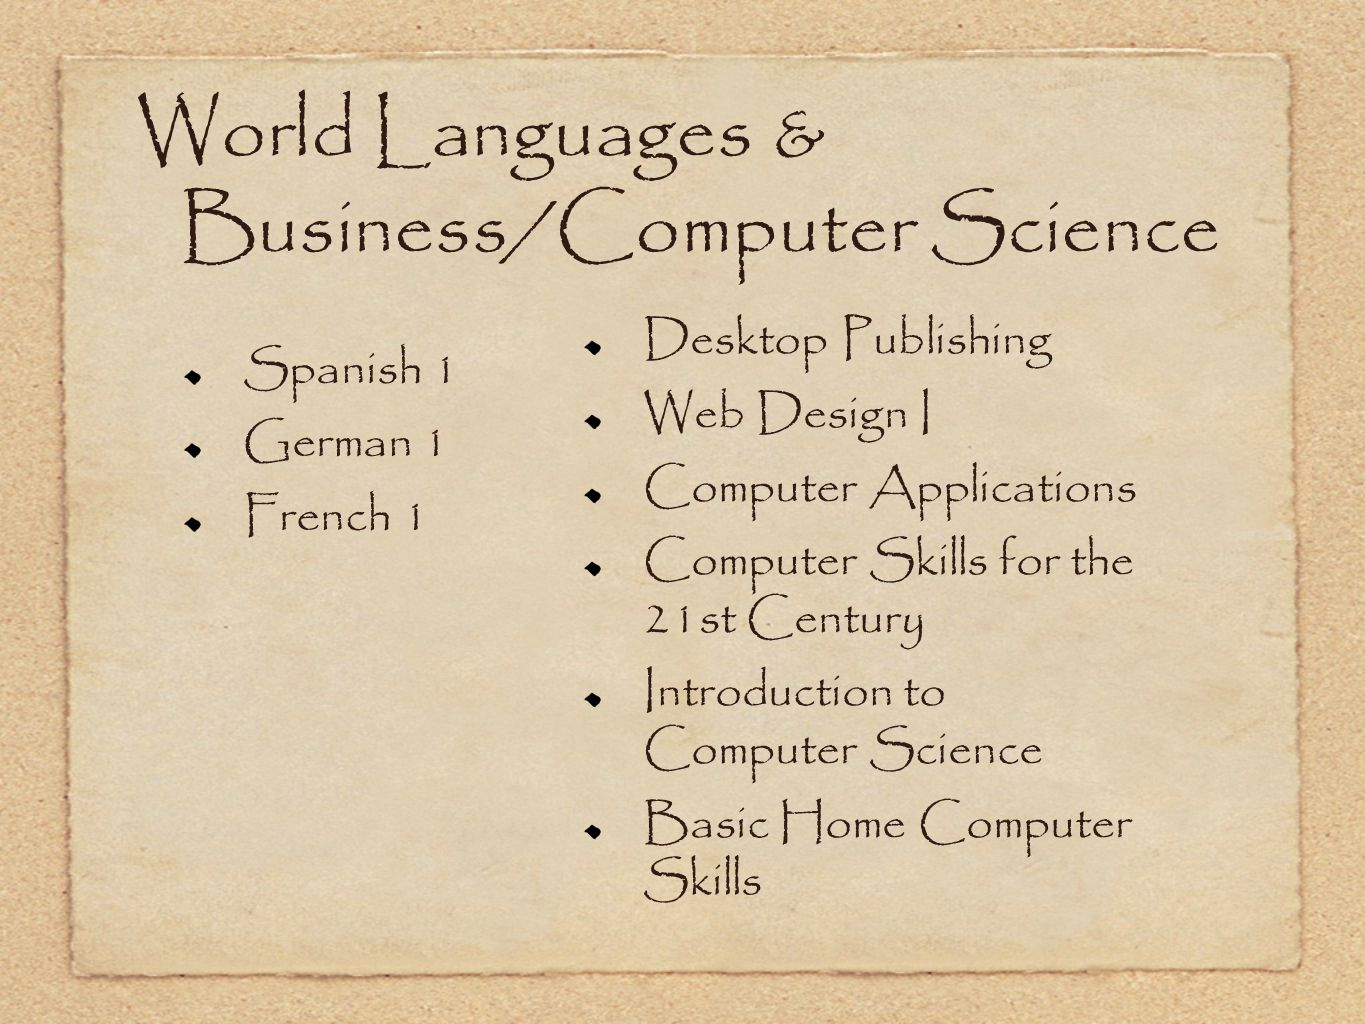 World Languages & Business/Computer Science